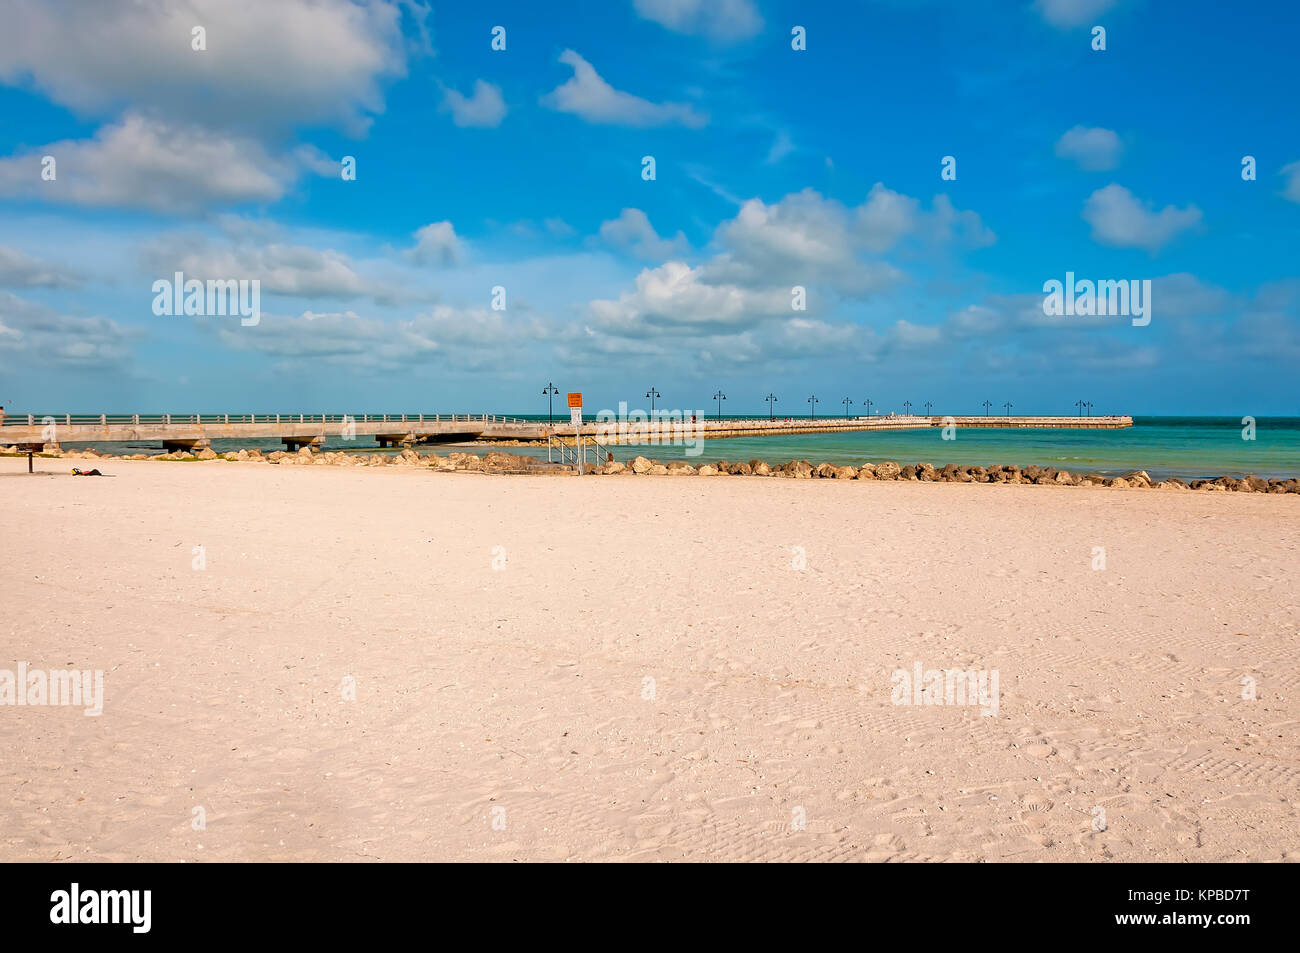 White sand and White Street Pier at Higgs Memorial Beach Key West Florida - Stock Image